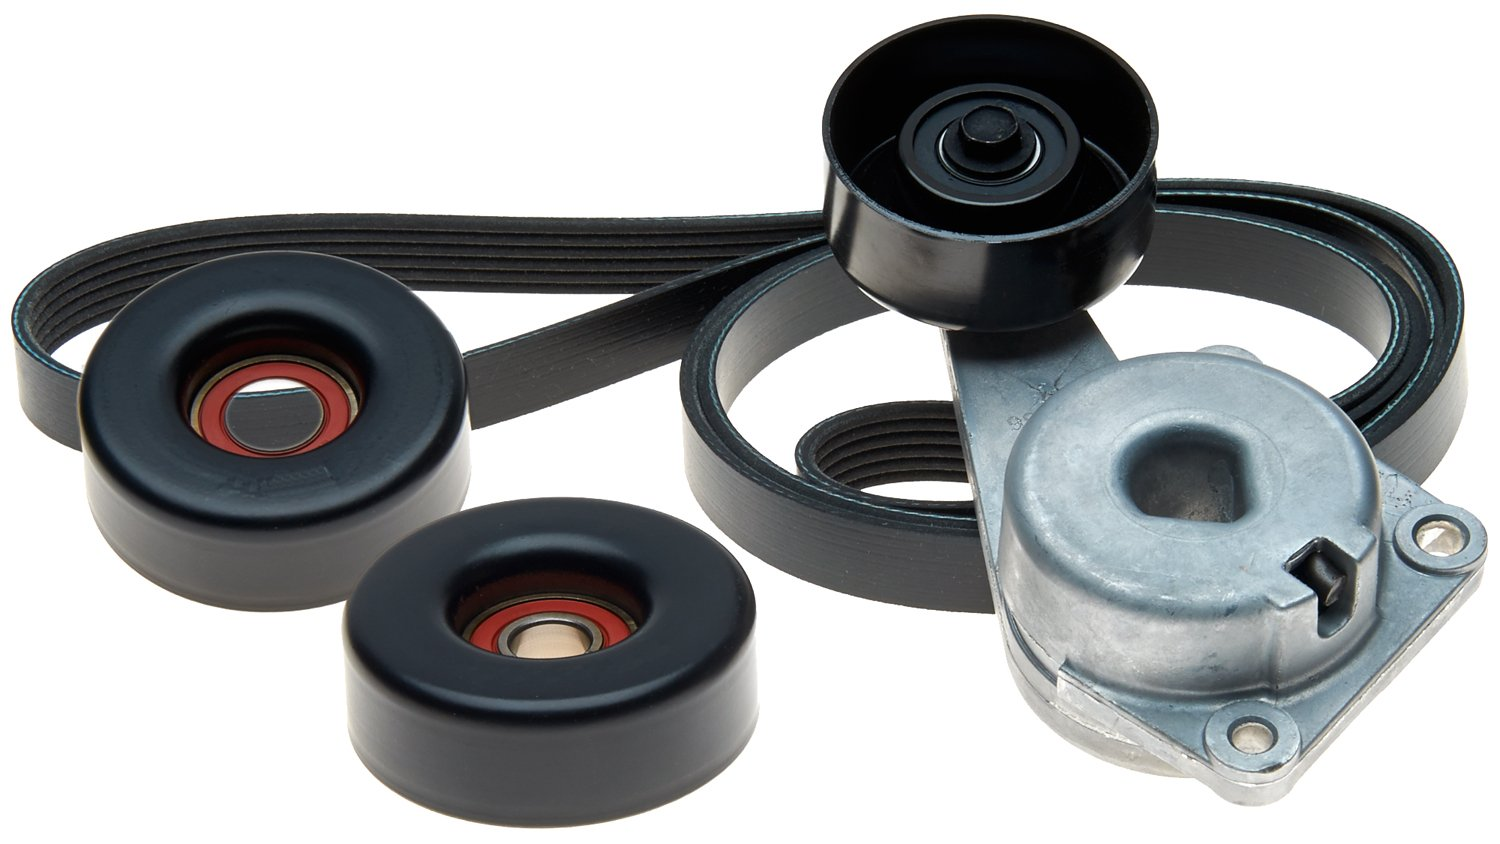 ACDelco ACK061025 Professional Automatic Belt Tensioner and Pulley Kit with Tensioner, Pulleys, and Belt by ACDelco